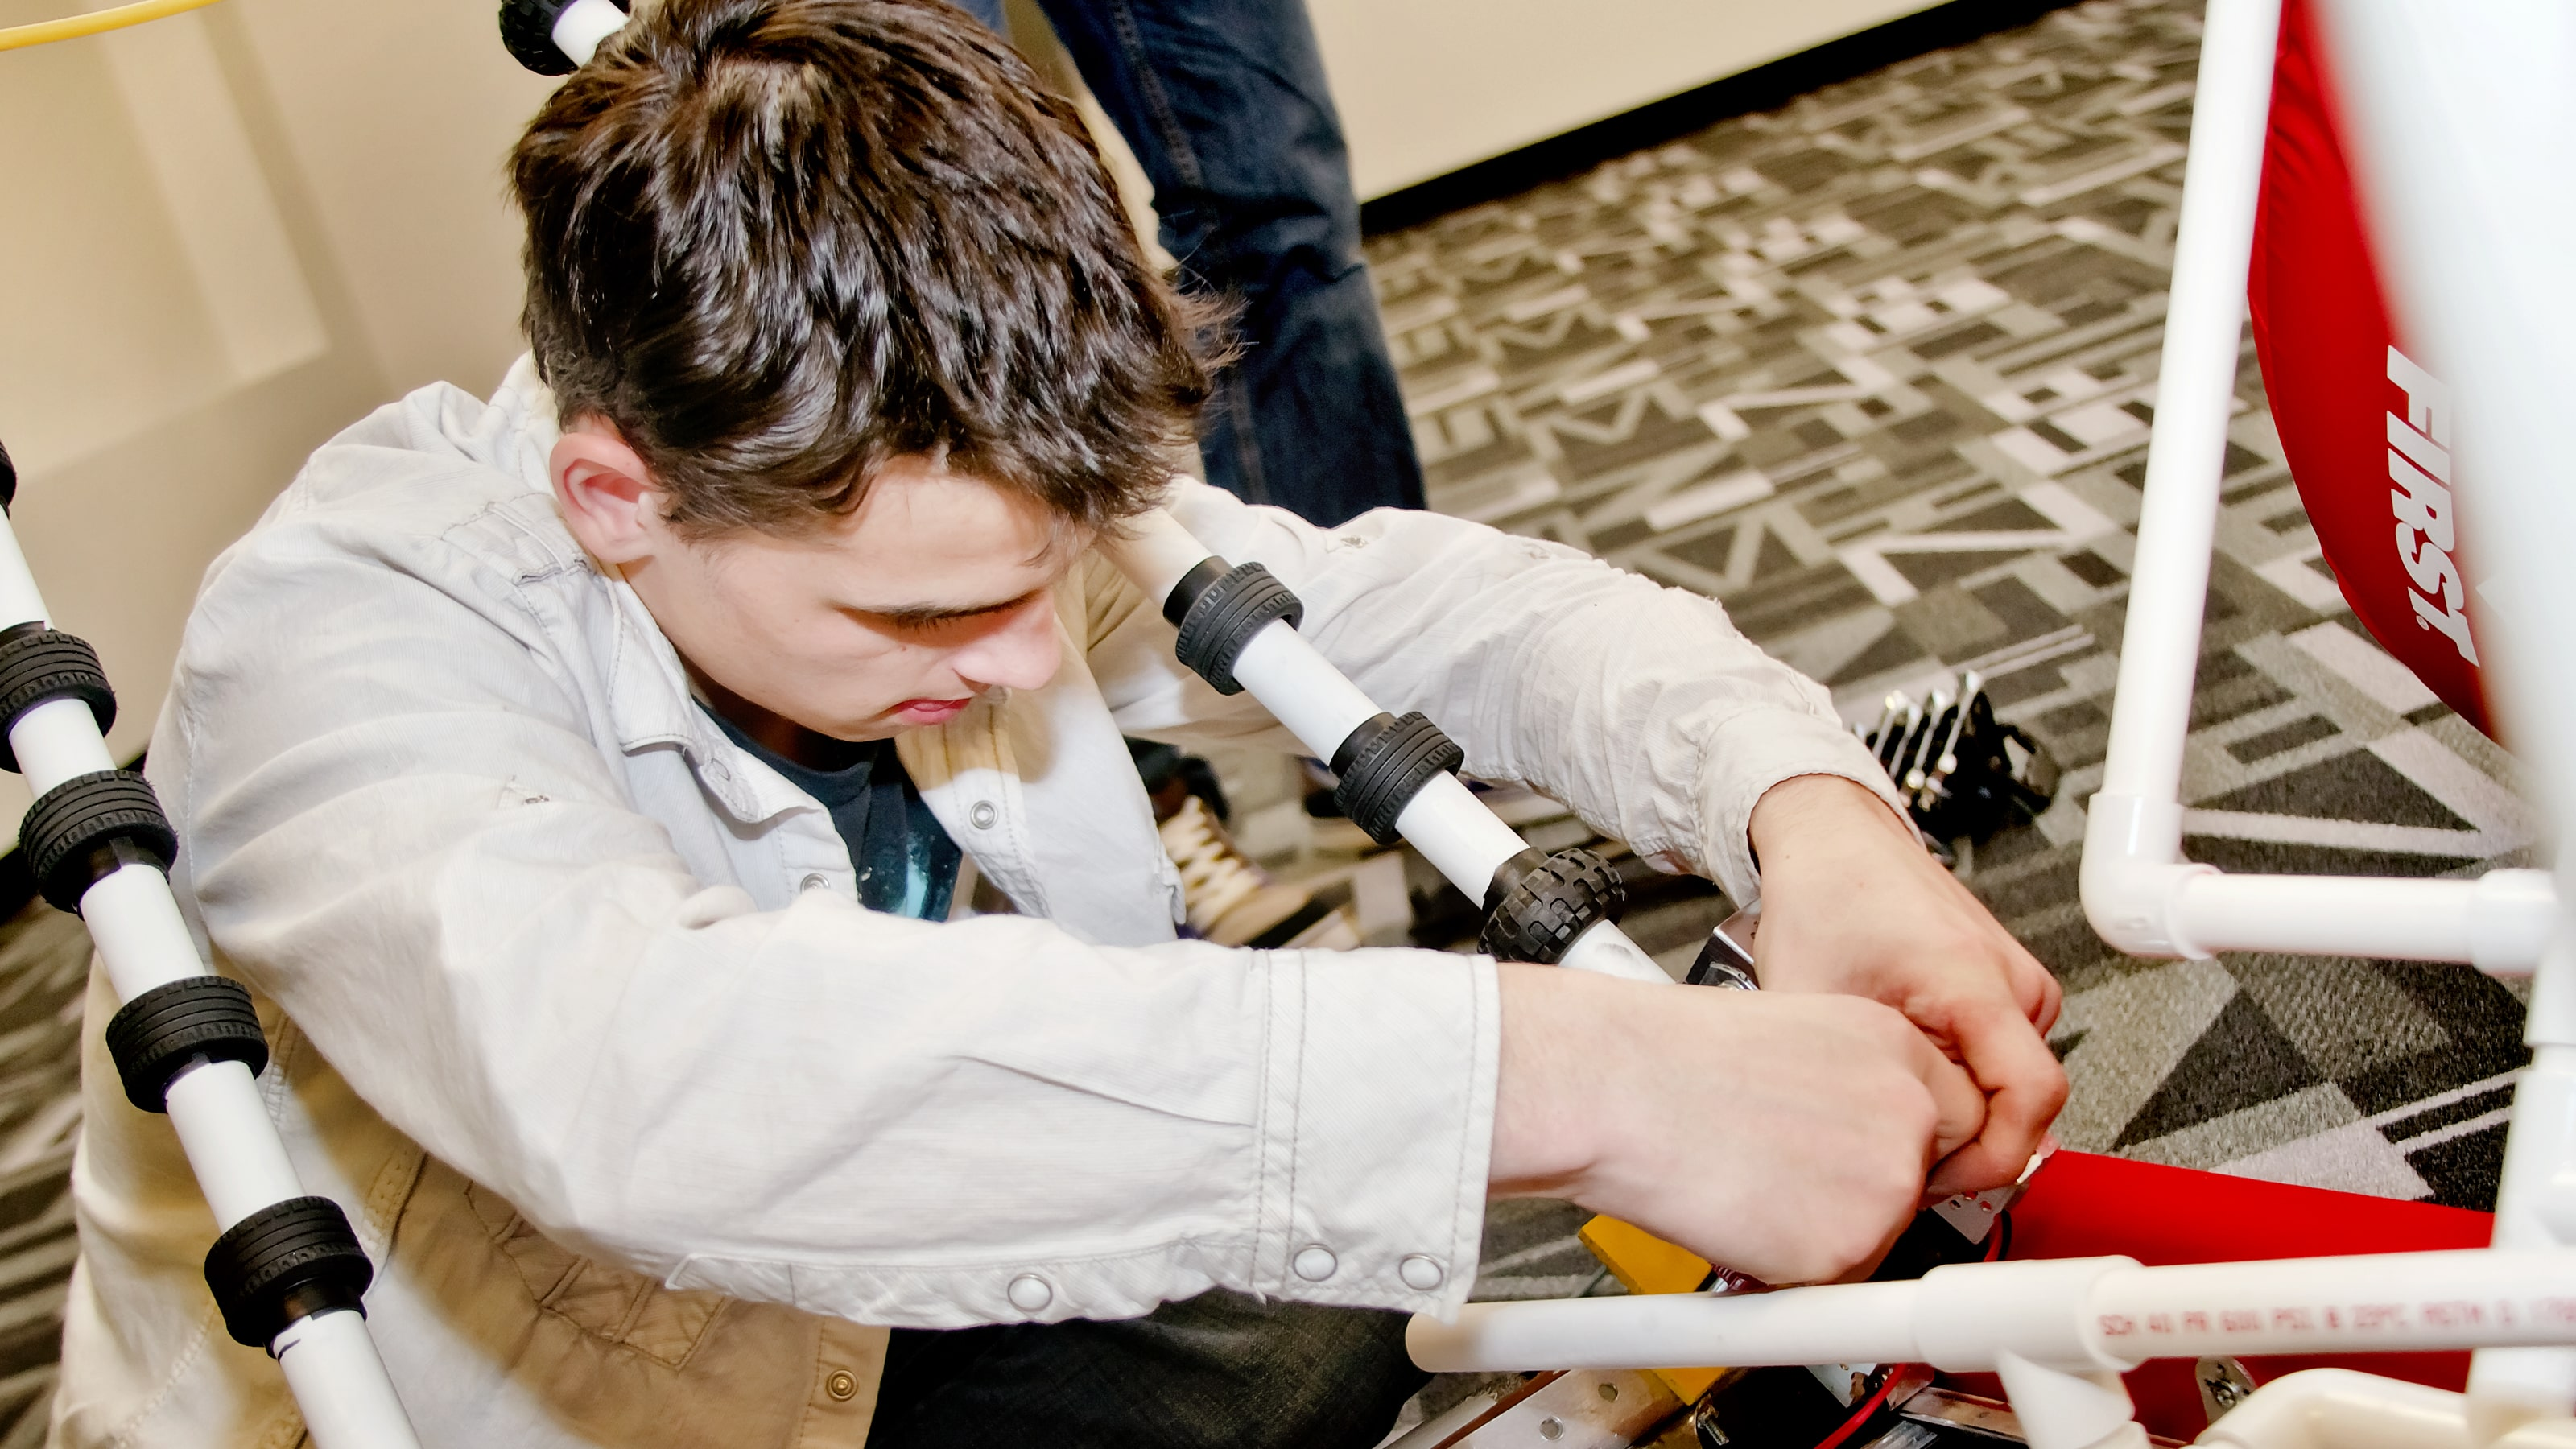 DigiPen WaNIC student working on robot acquisition arms